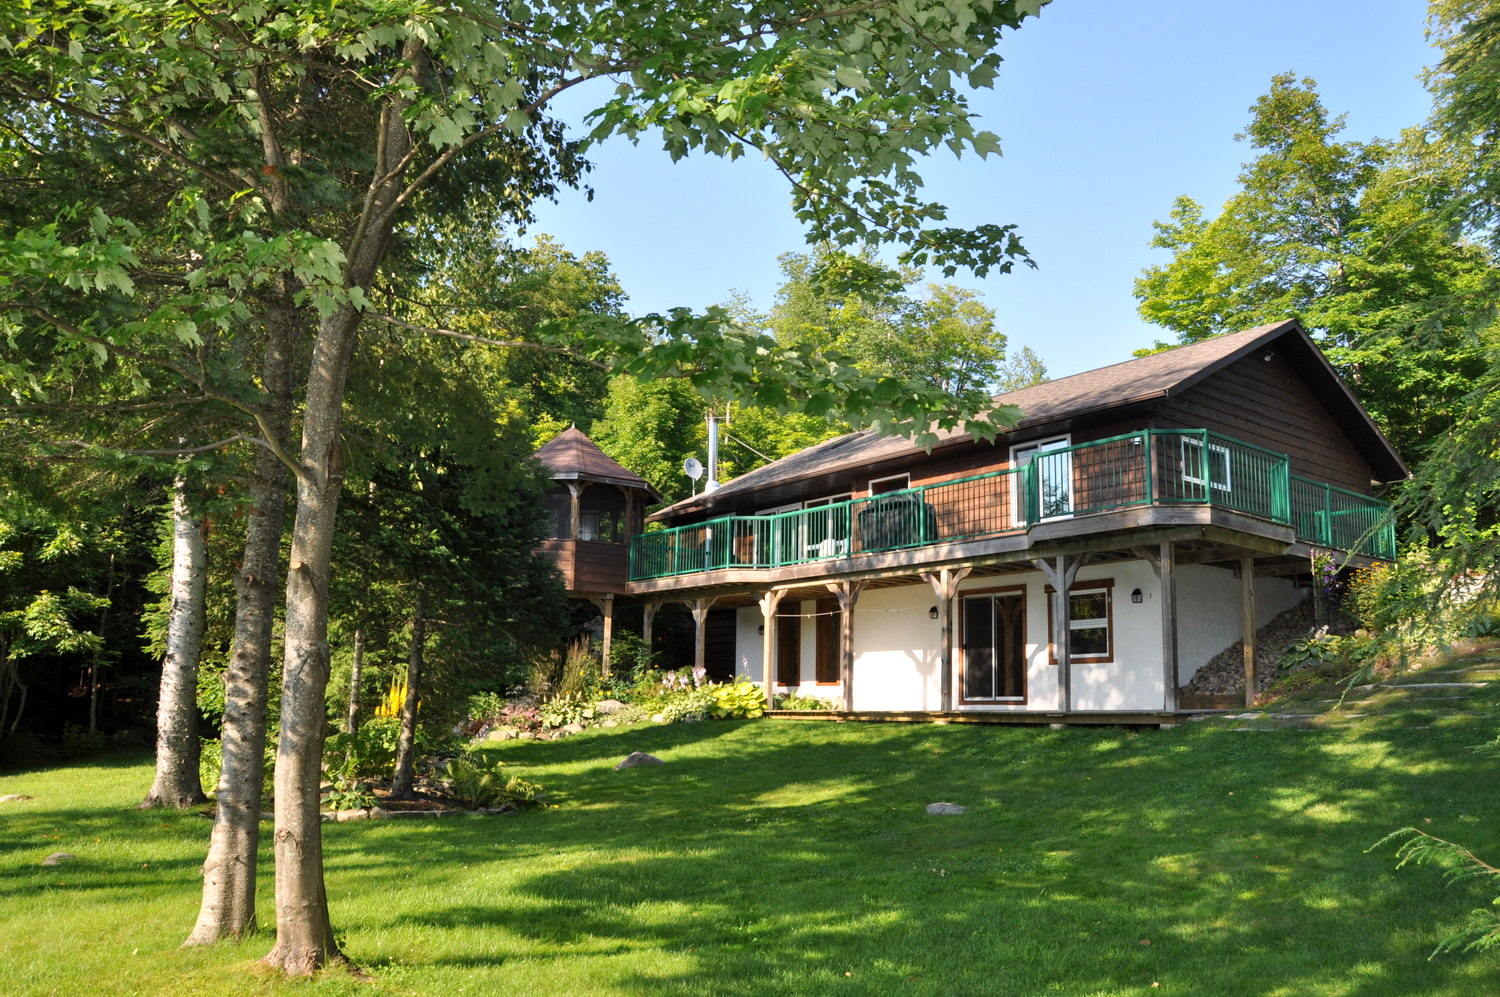 where private best in muskoka stay rentals member to waterfront cottage ontario vacations